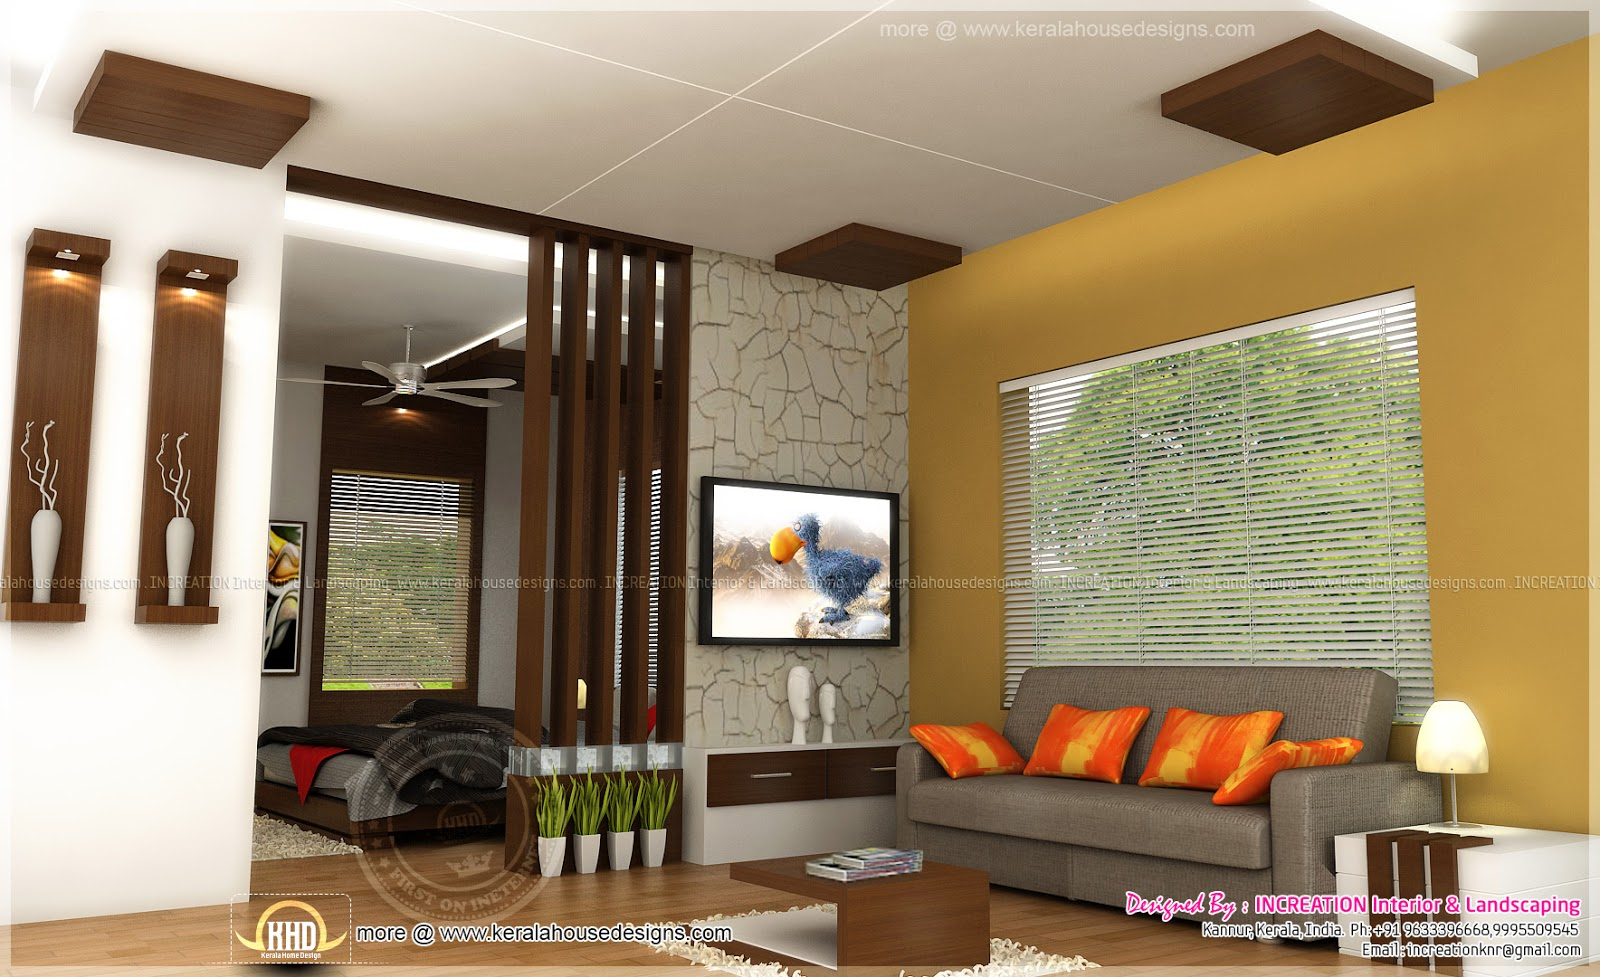 Interior designs from kannur kerala kerala home design - Home interior design images india ...